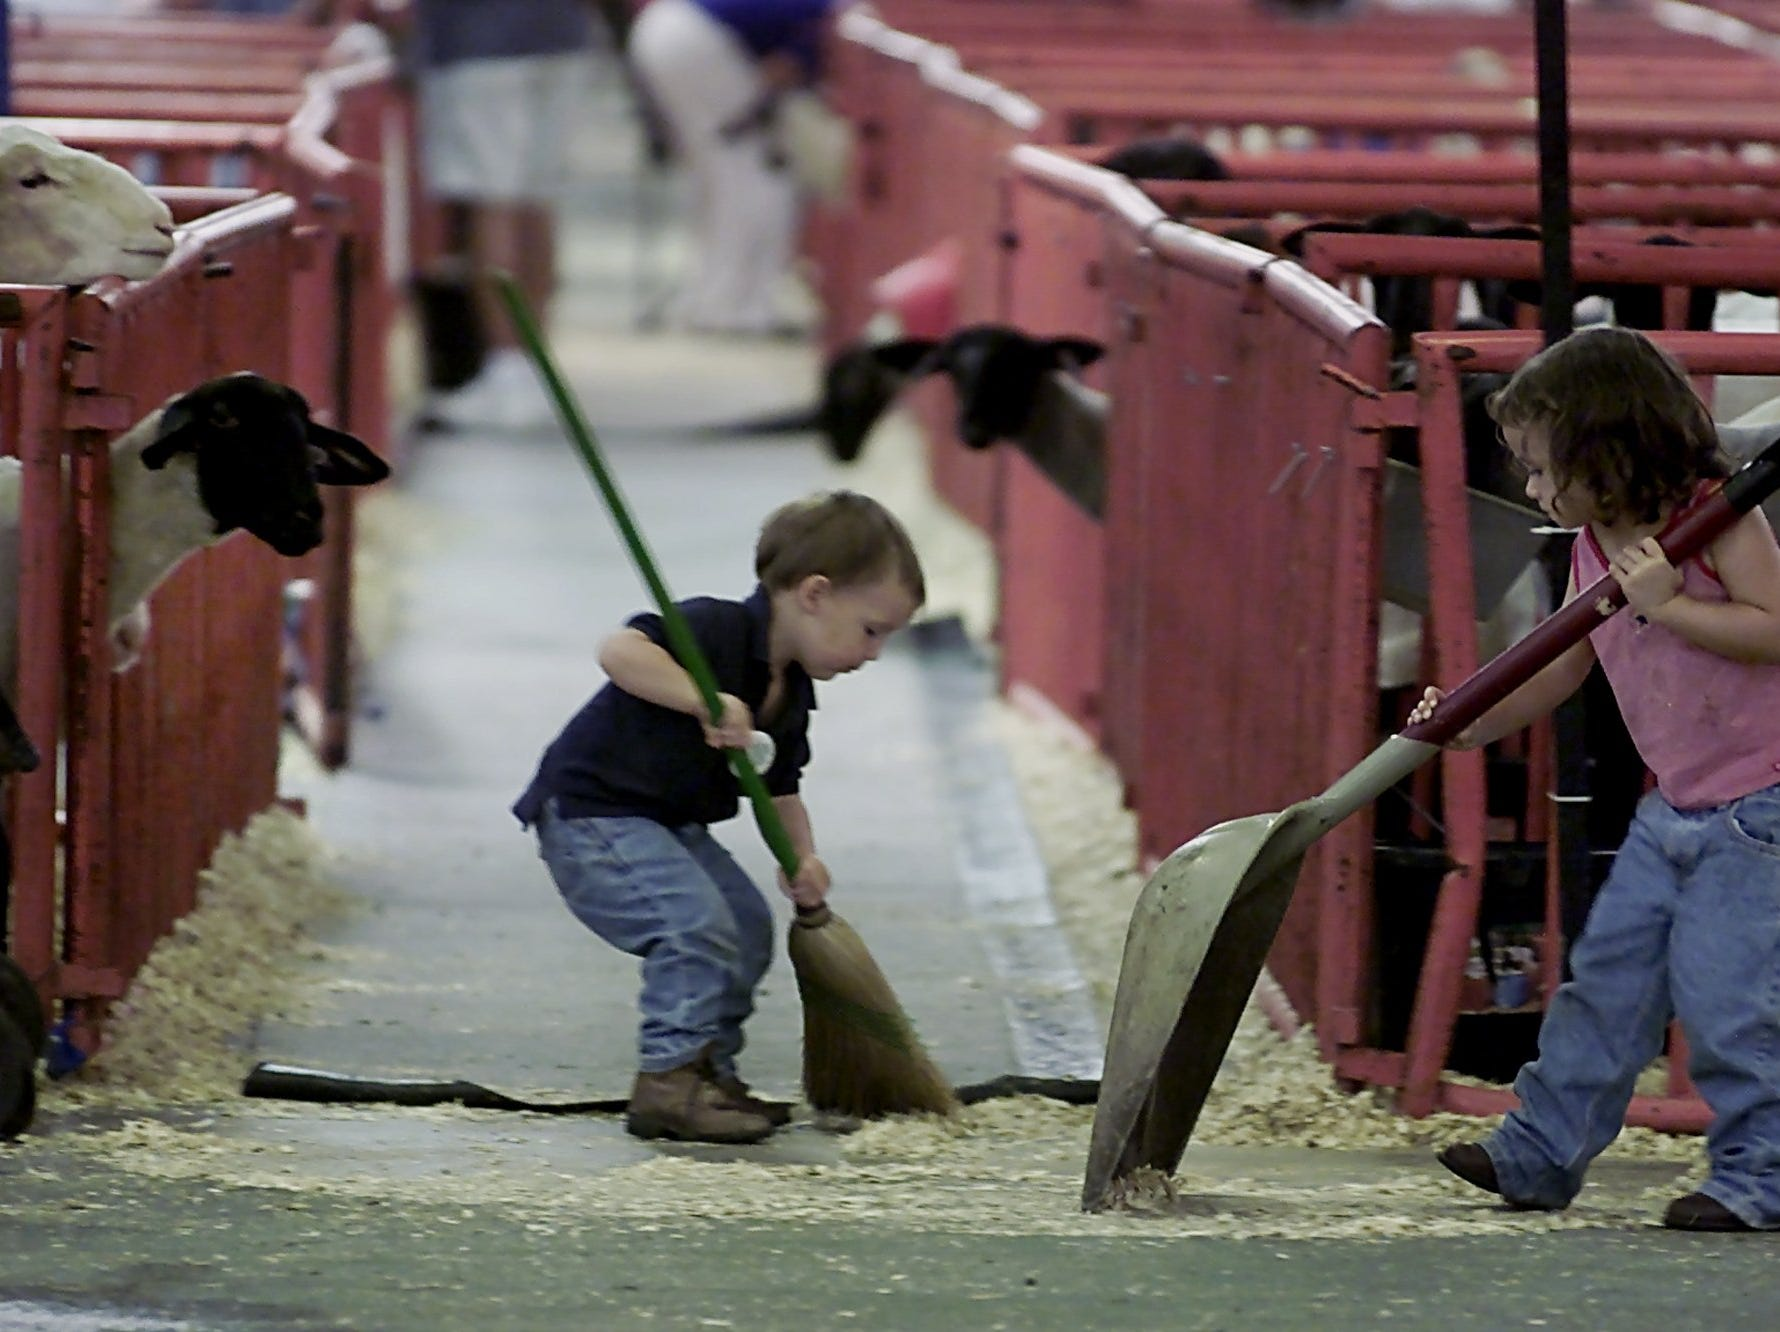 T.J. Yazell, 2, left, and his sister Haleigh Yazell, 3, of Bourbon County, had the duty to clean up around their family's sheep stalls at the state fairgrounds after the fair closed.-